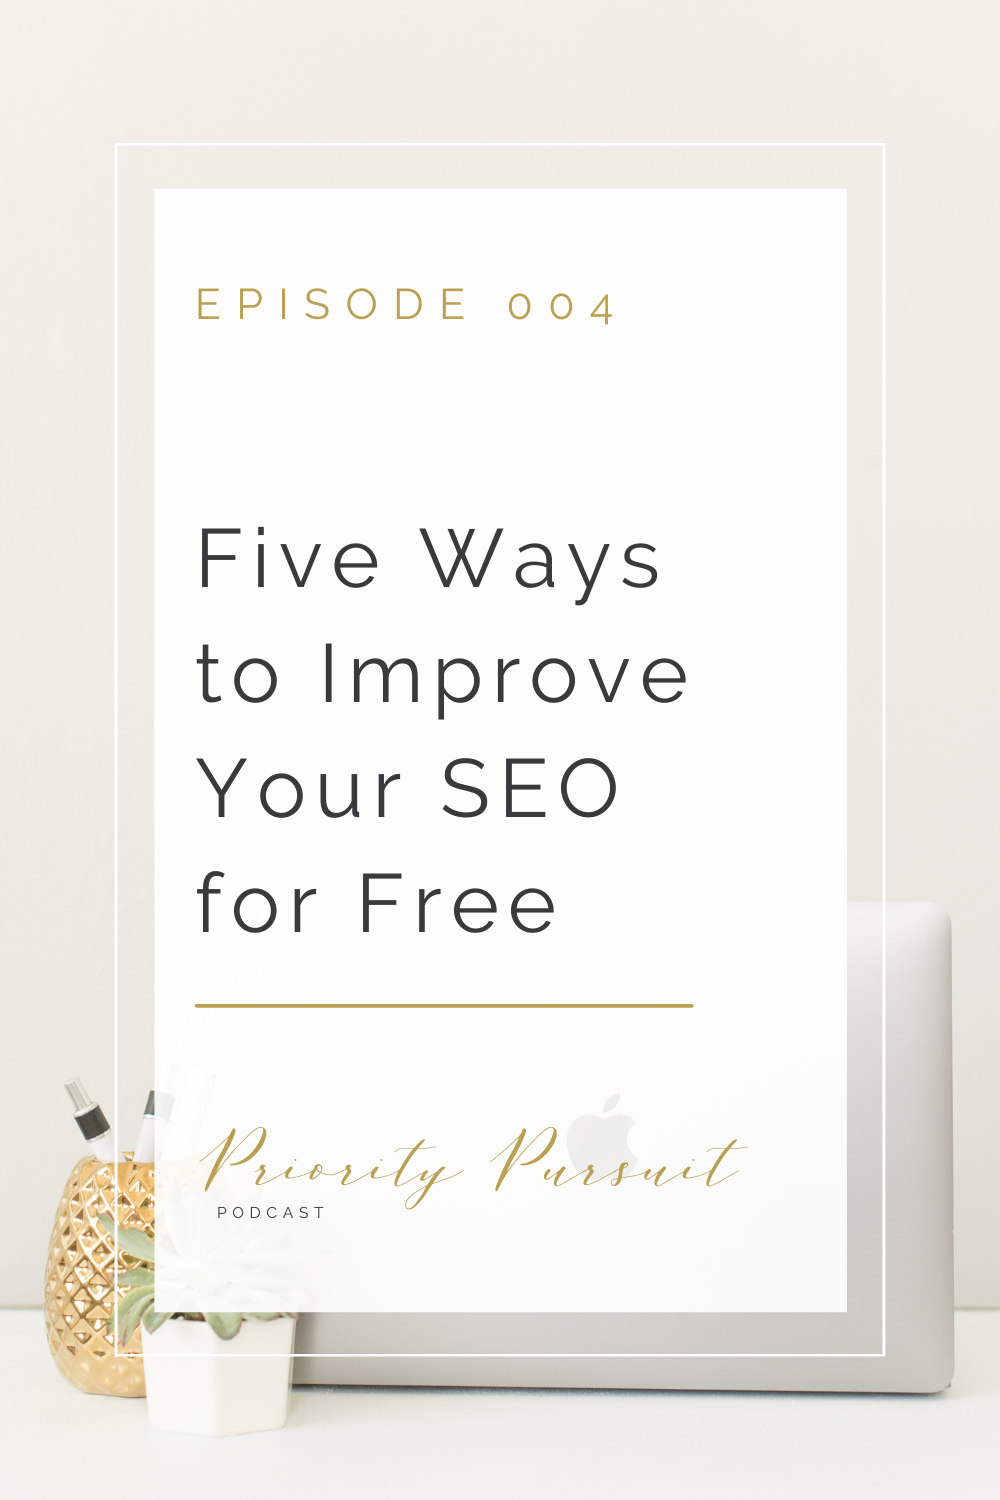 Episode 004 of The Priority Pursuit Podcast breaks down five ways photographers and creative entrepreneurs can improve their SEO for free